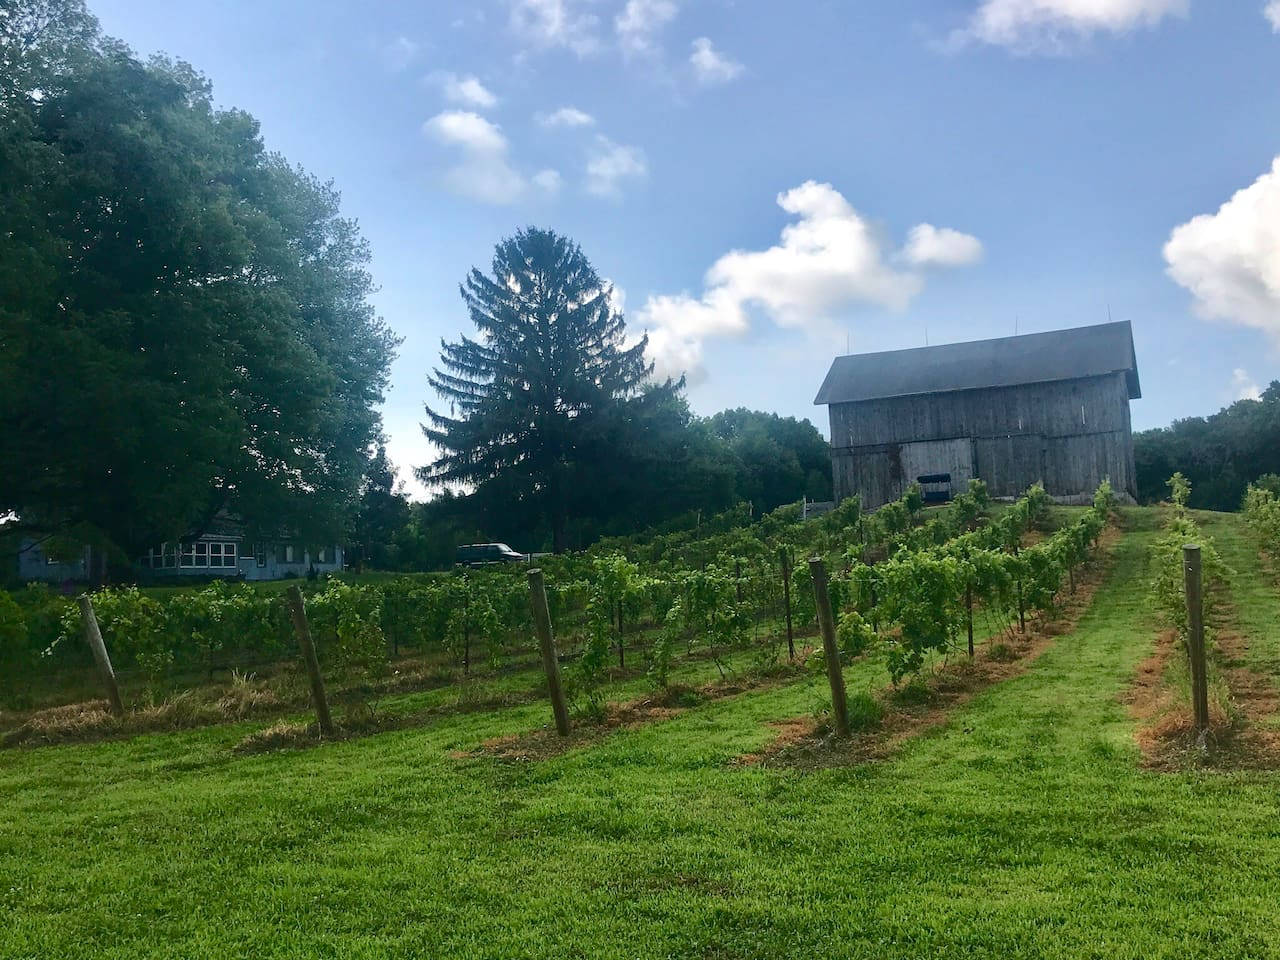 Our vineyard in front of our barn ( house to left of barn next to trees )